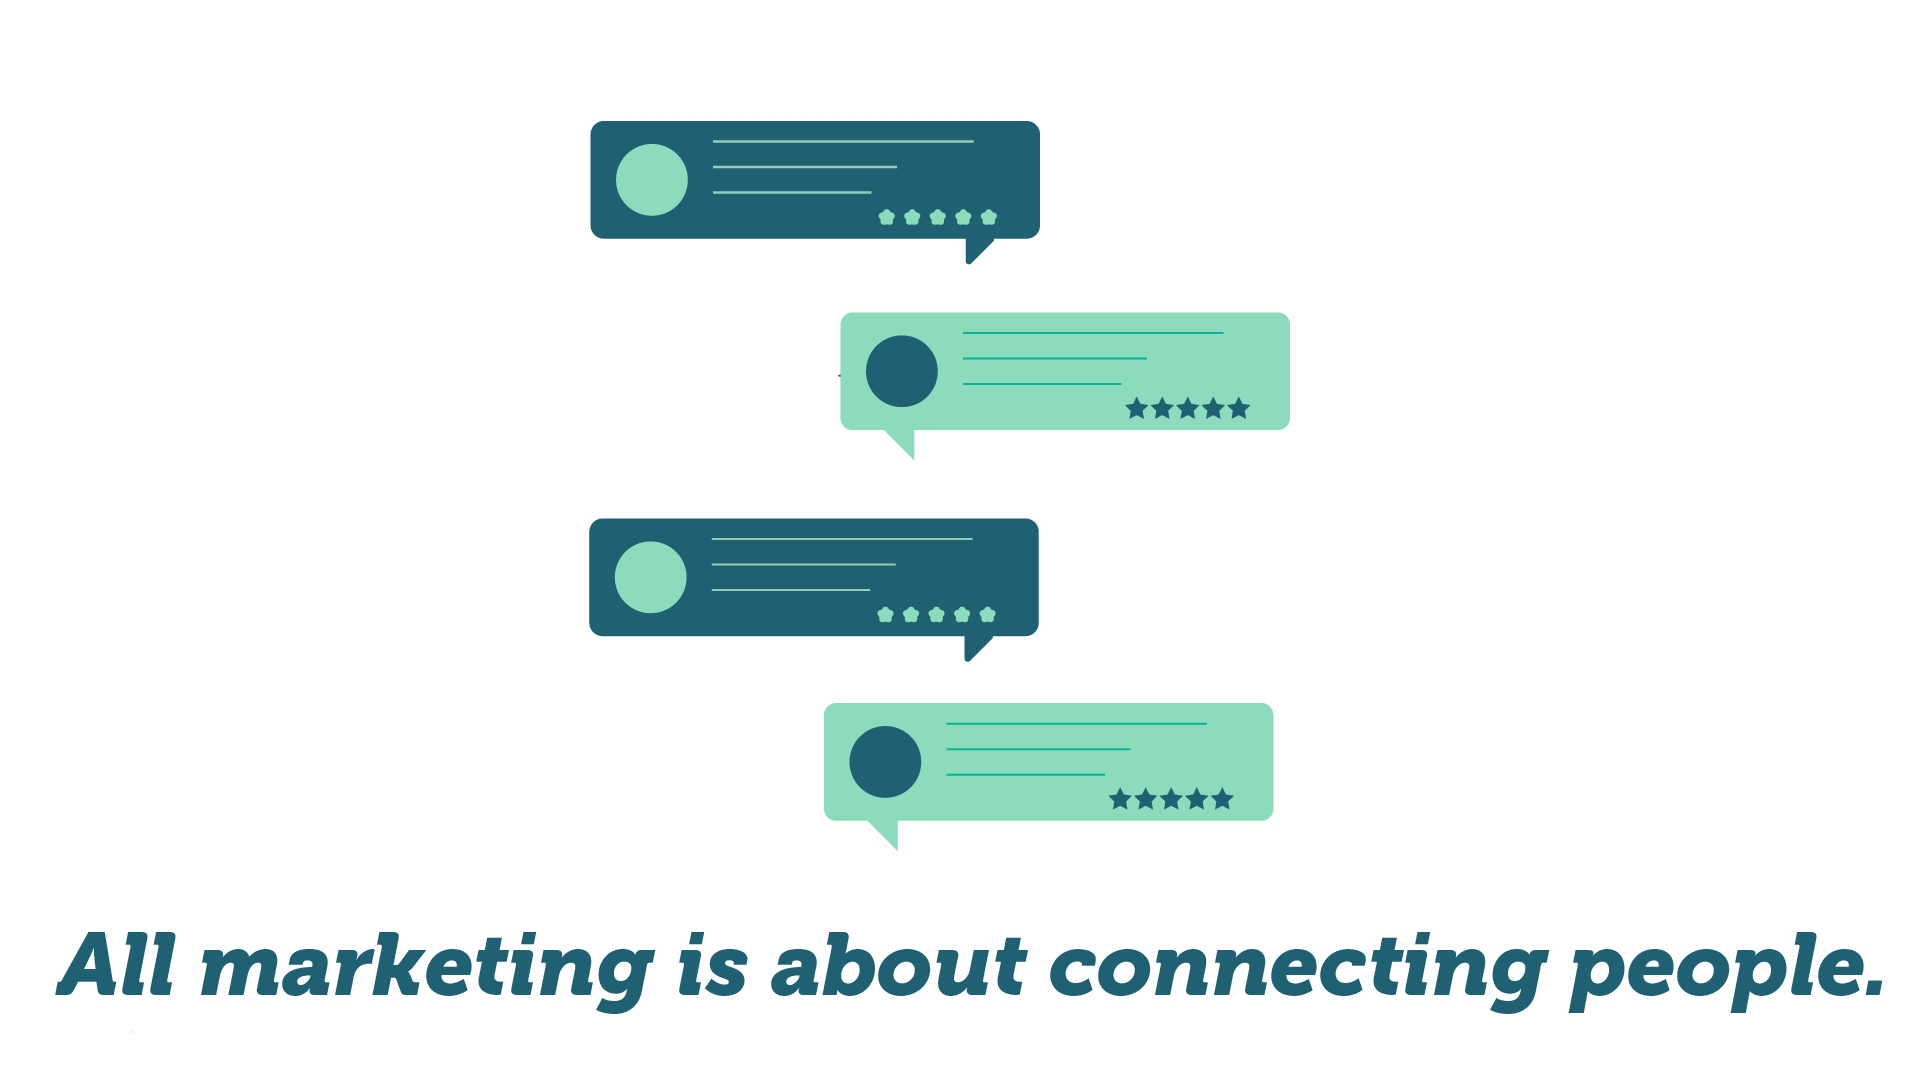 It's about connecting people